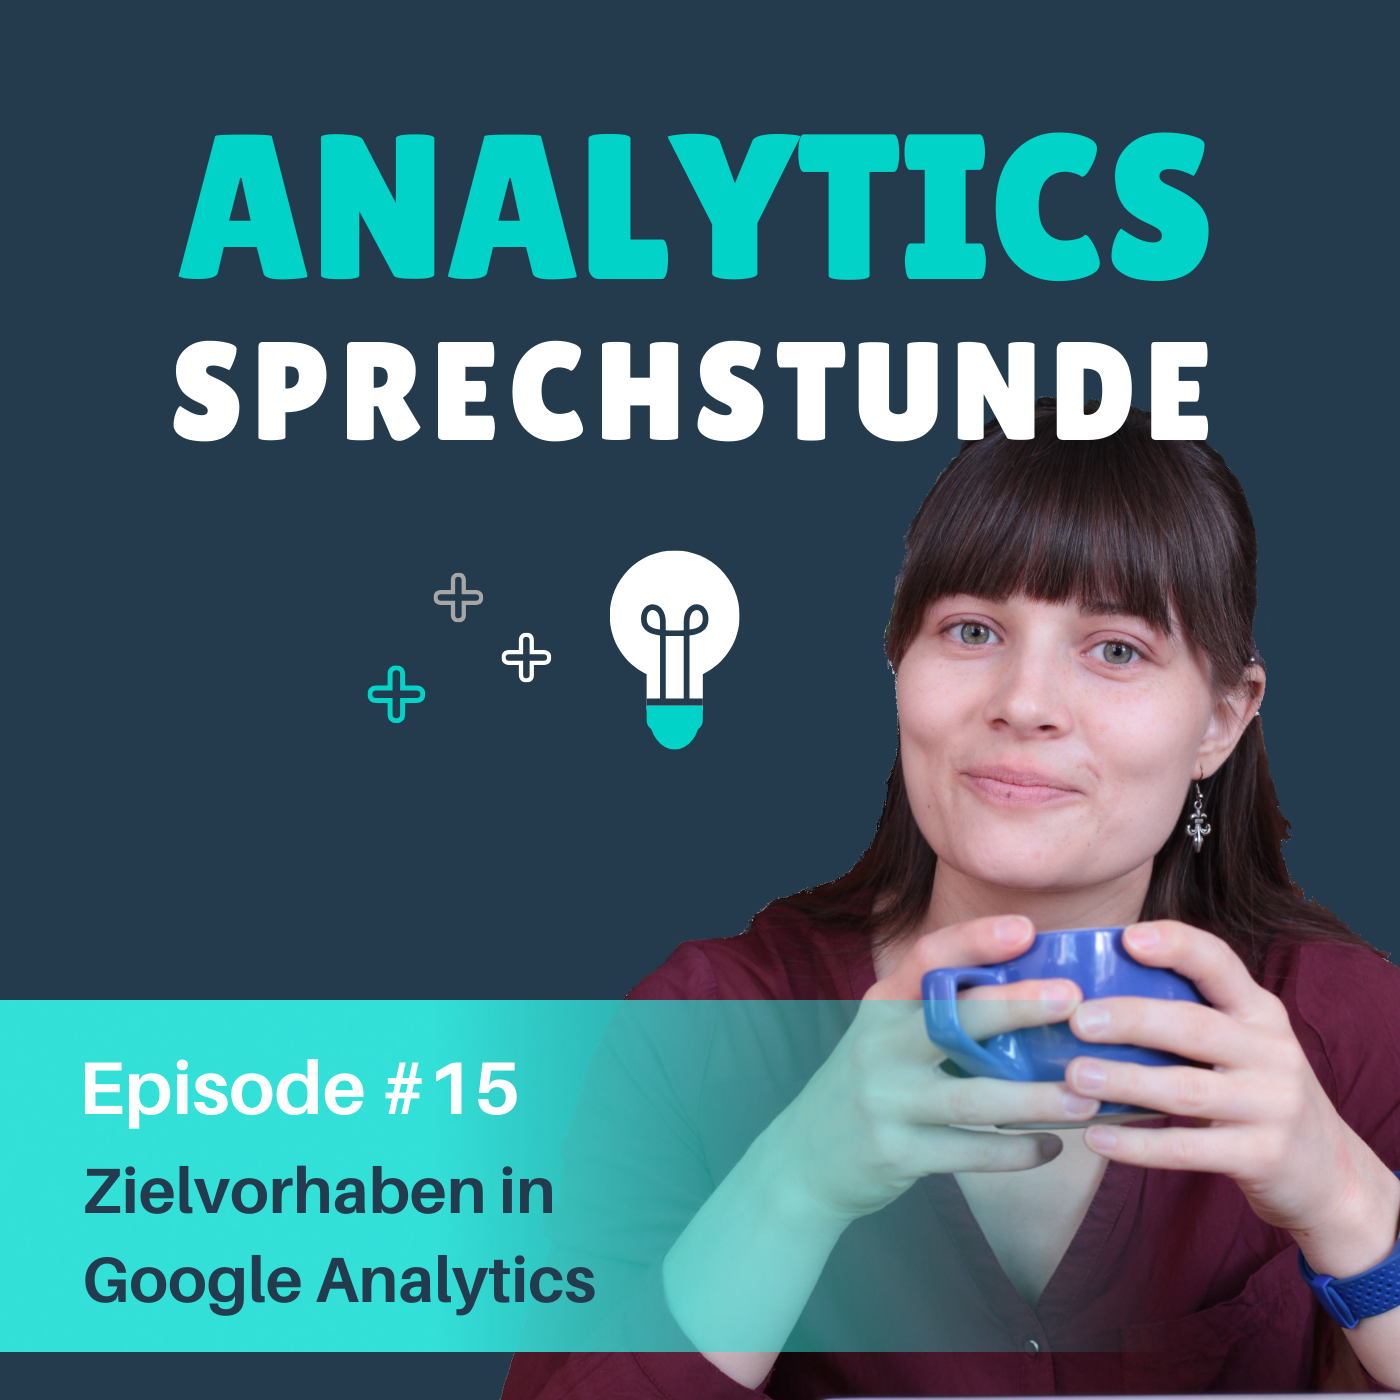 Episode-15-Zielvorhaben-in-Google-Analytics